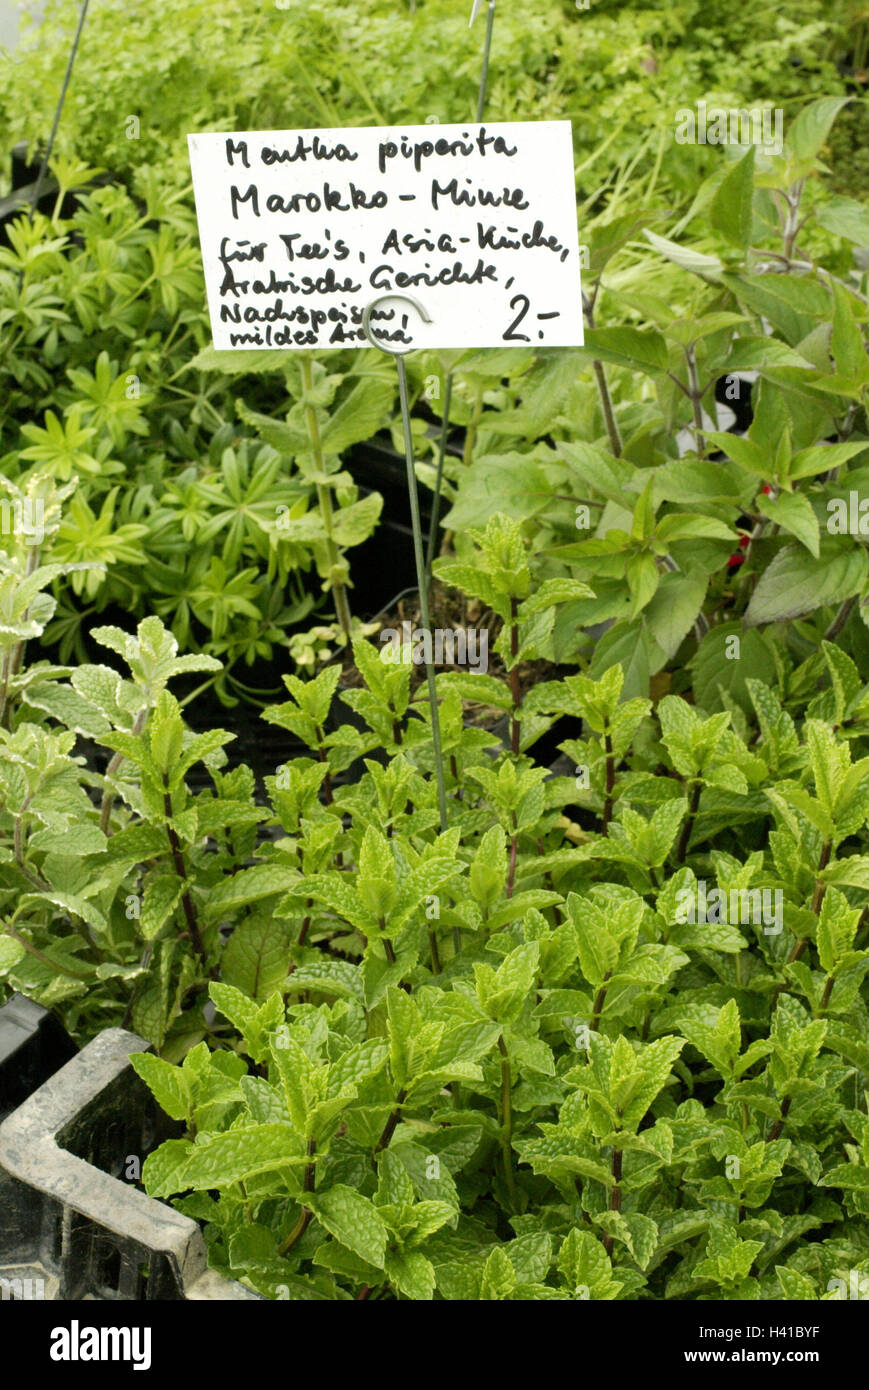 Market Stall Sales Spice Plants Morocco Mint Sign Market Food